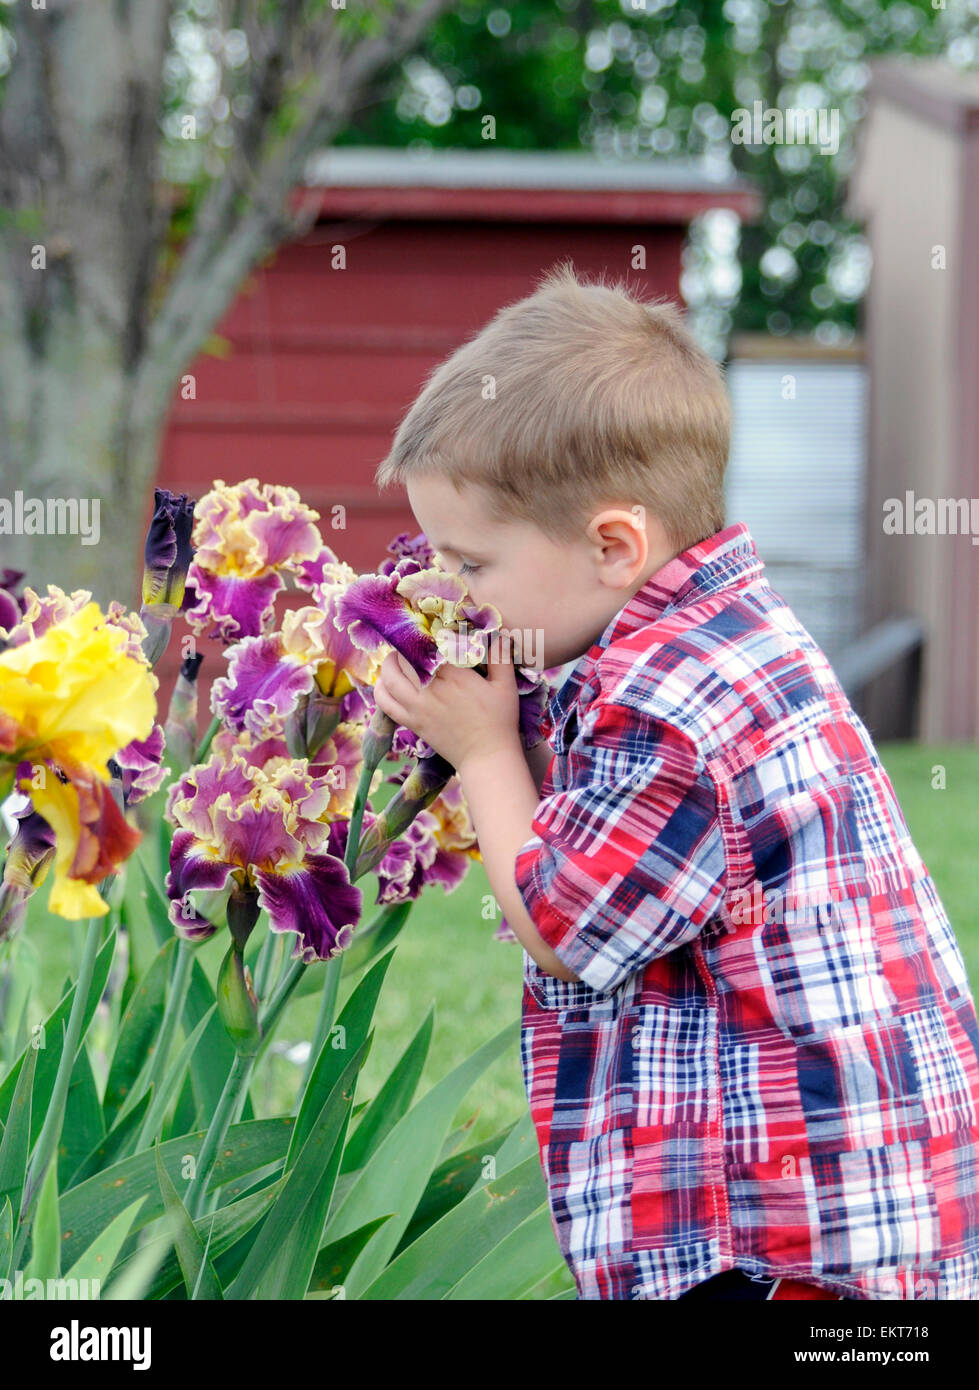 Child smelling Iris flowers - Stock Image